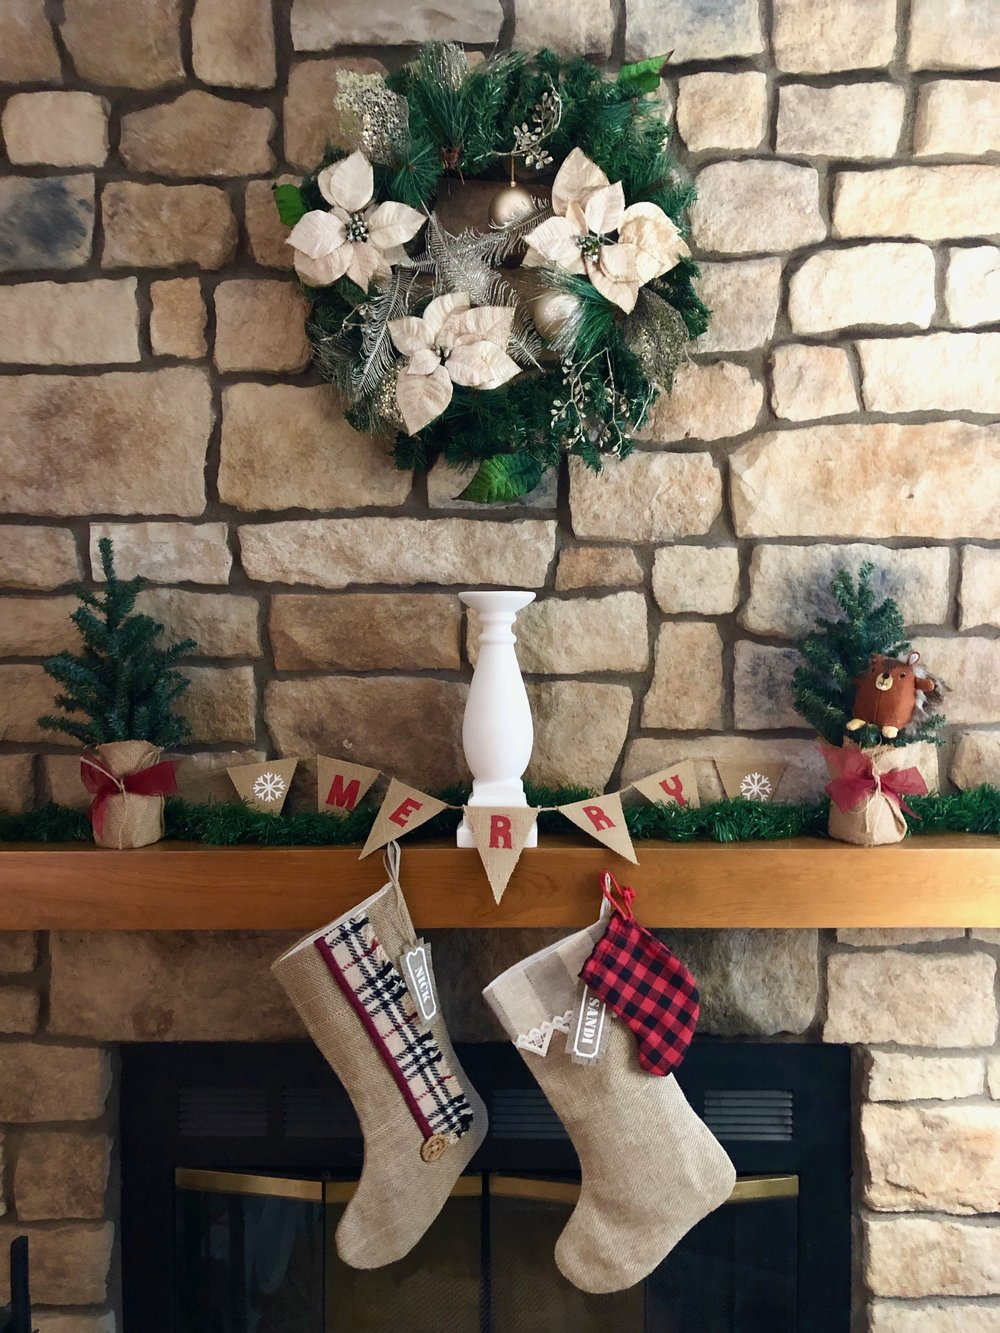 Miniature stocking announcement - Denver personal stylist